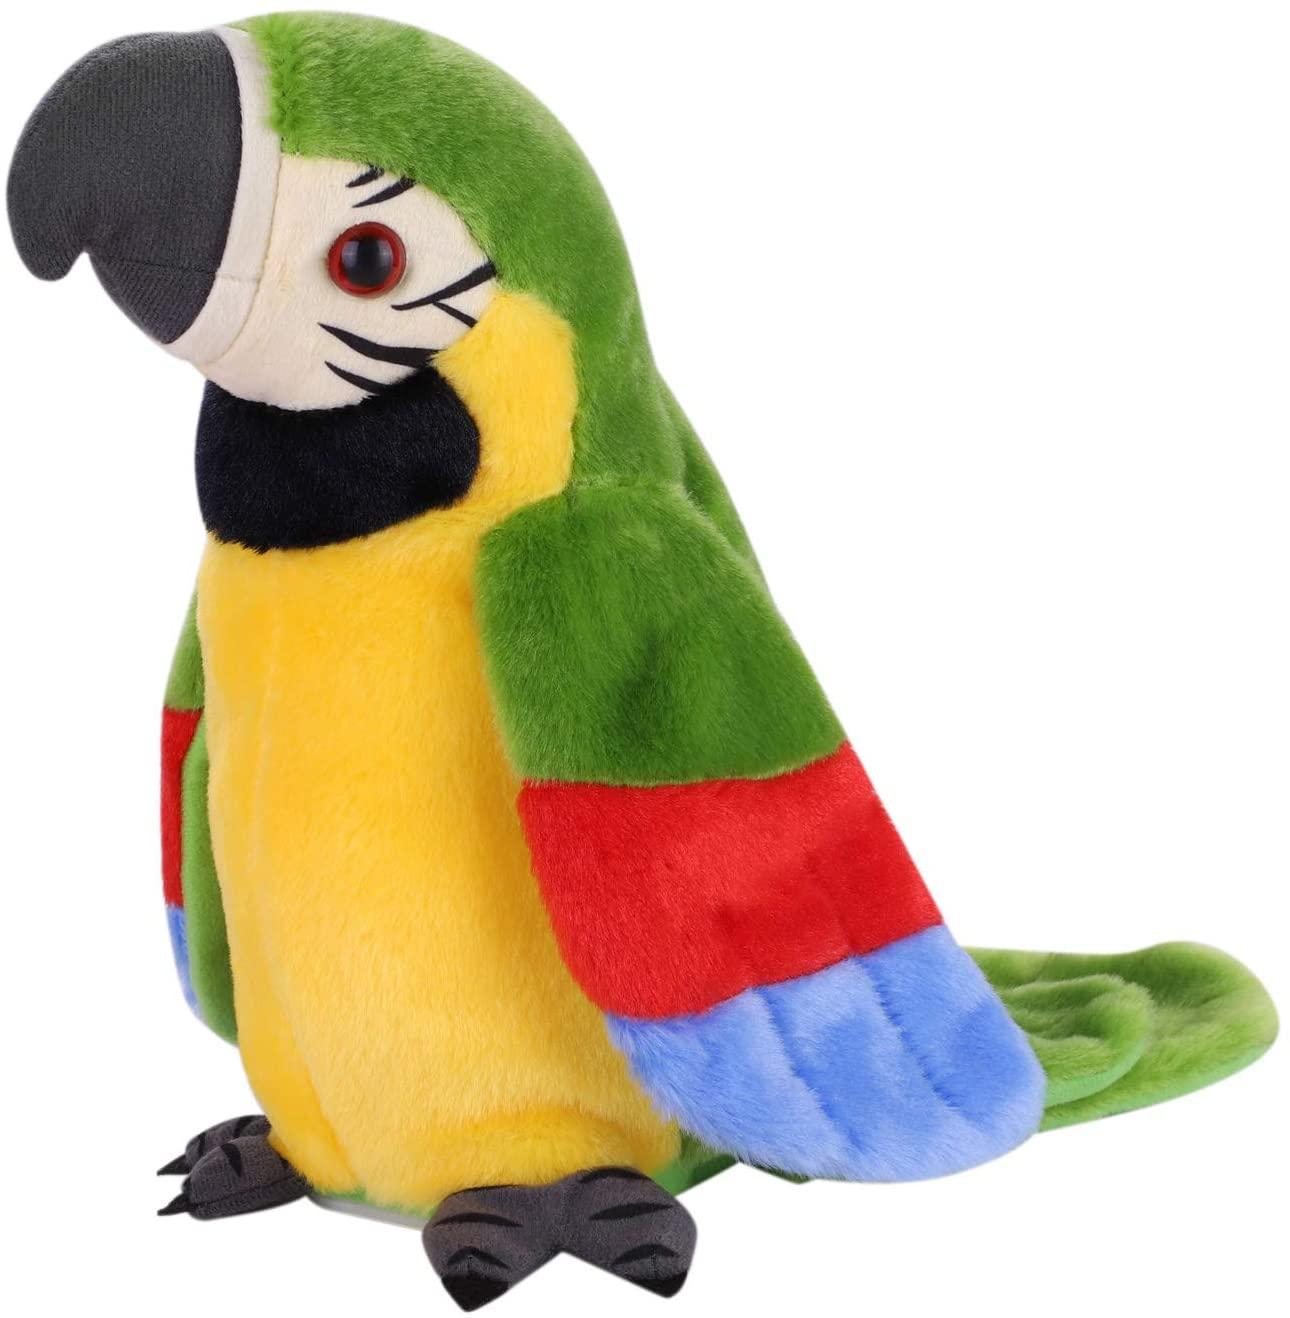 Talking Parrot Repeats What You Say Sing with Cute Voice Mimicry Speaking Parrot Talking Bird Multifunctional Electric Plush Parrot Speaking Pet Toys Gift for Kids Funny Learning & Happiness